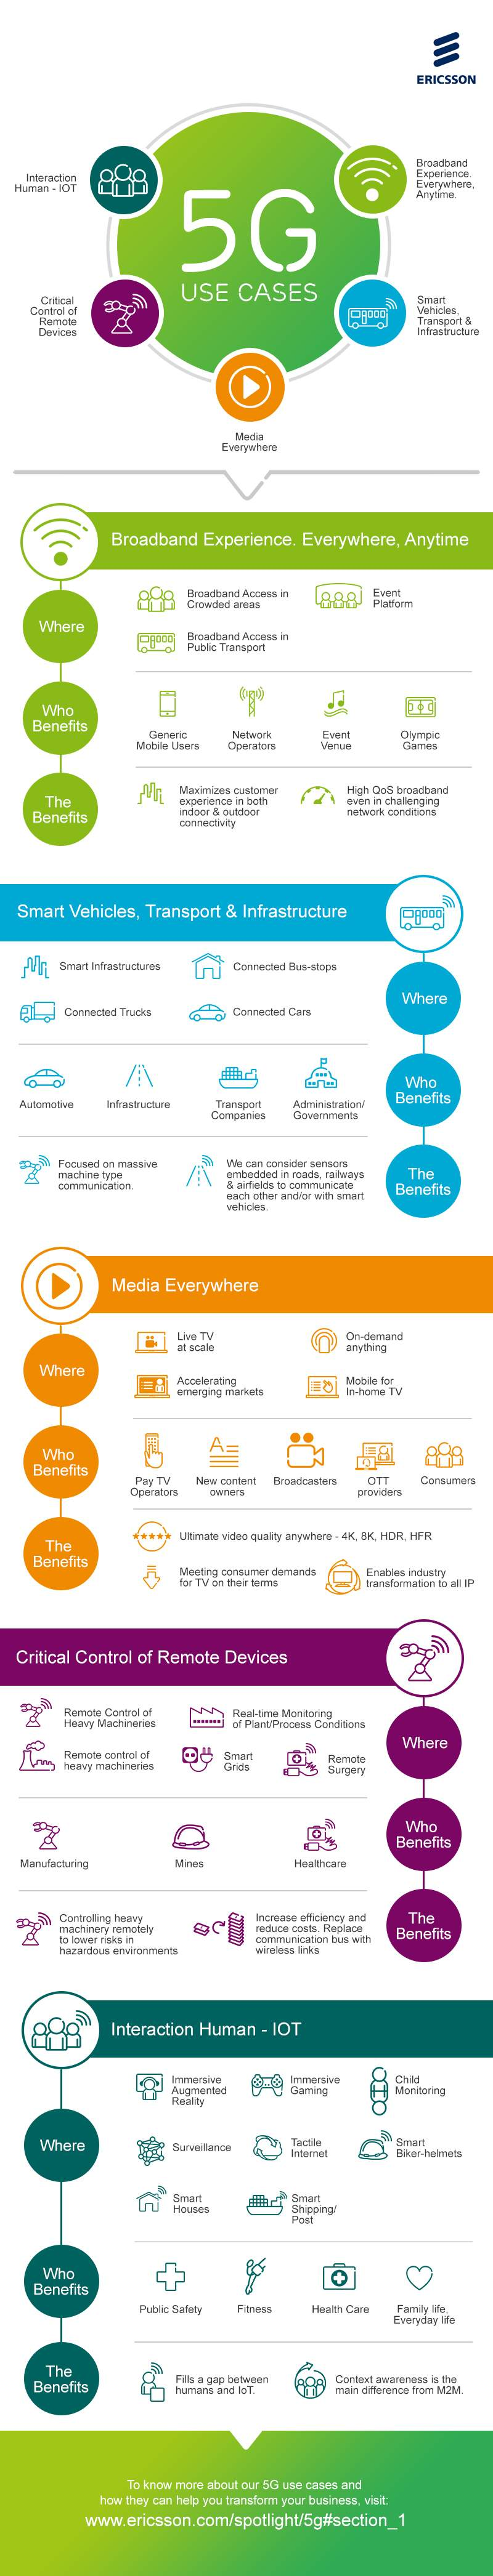 5G Use Cases Infographic